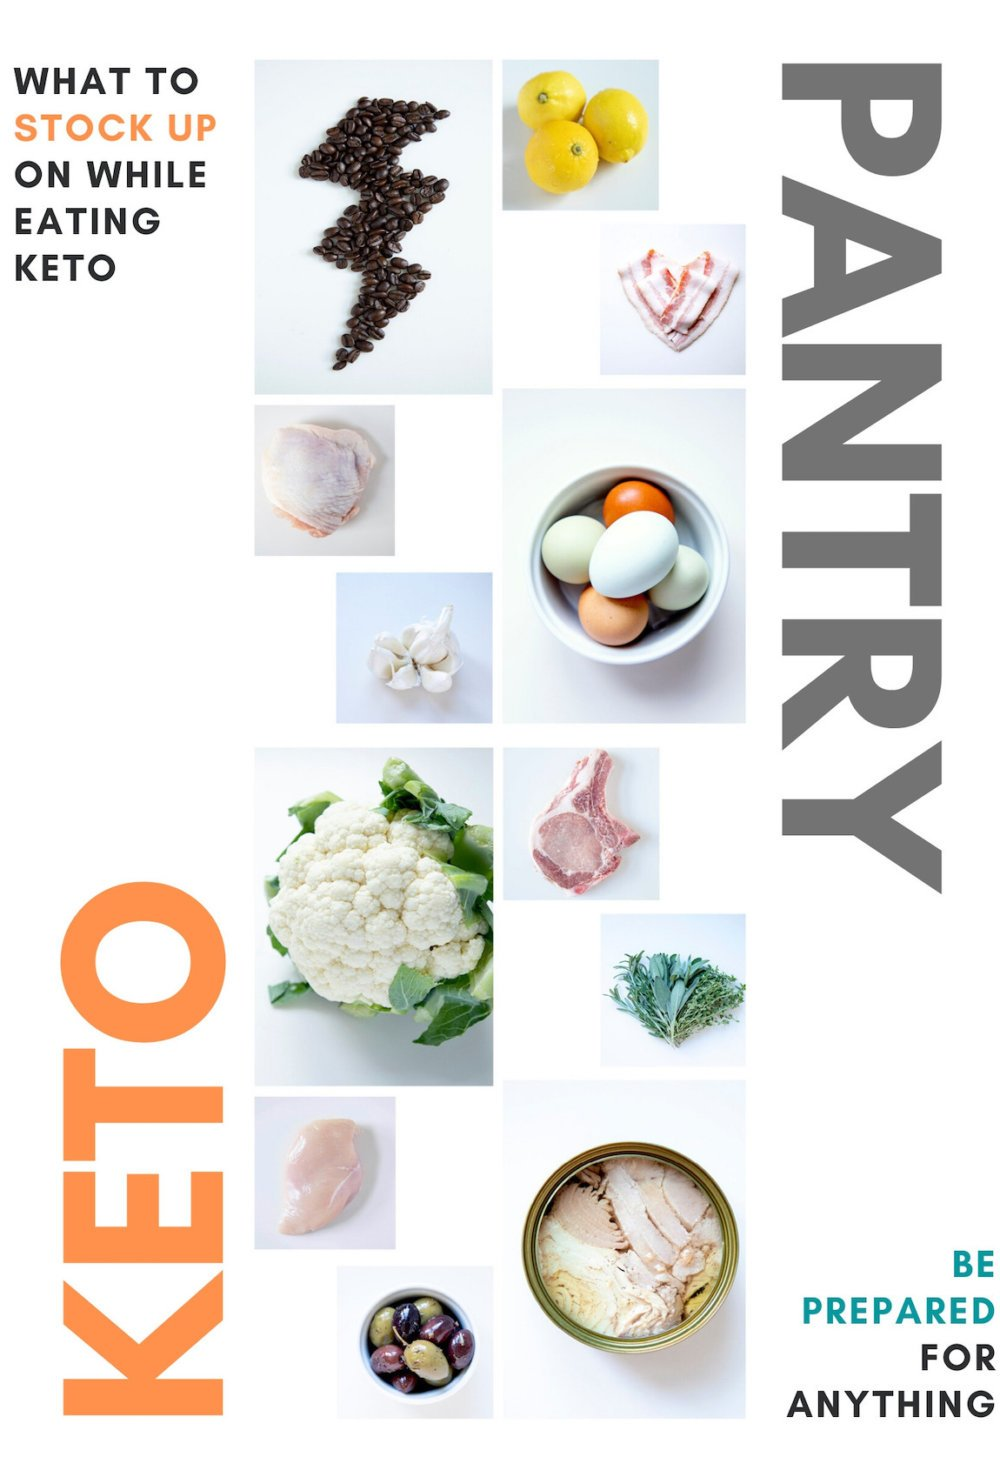 Essential Keto Pantry Guide Poster